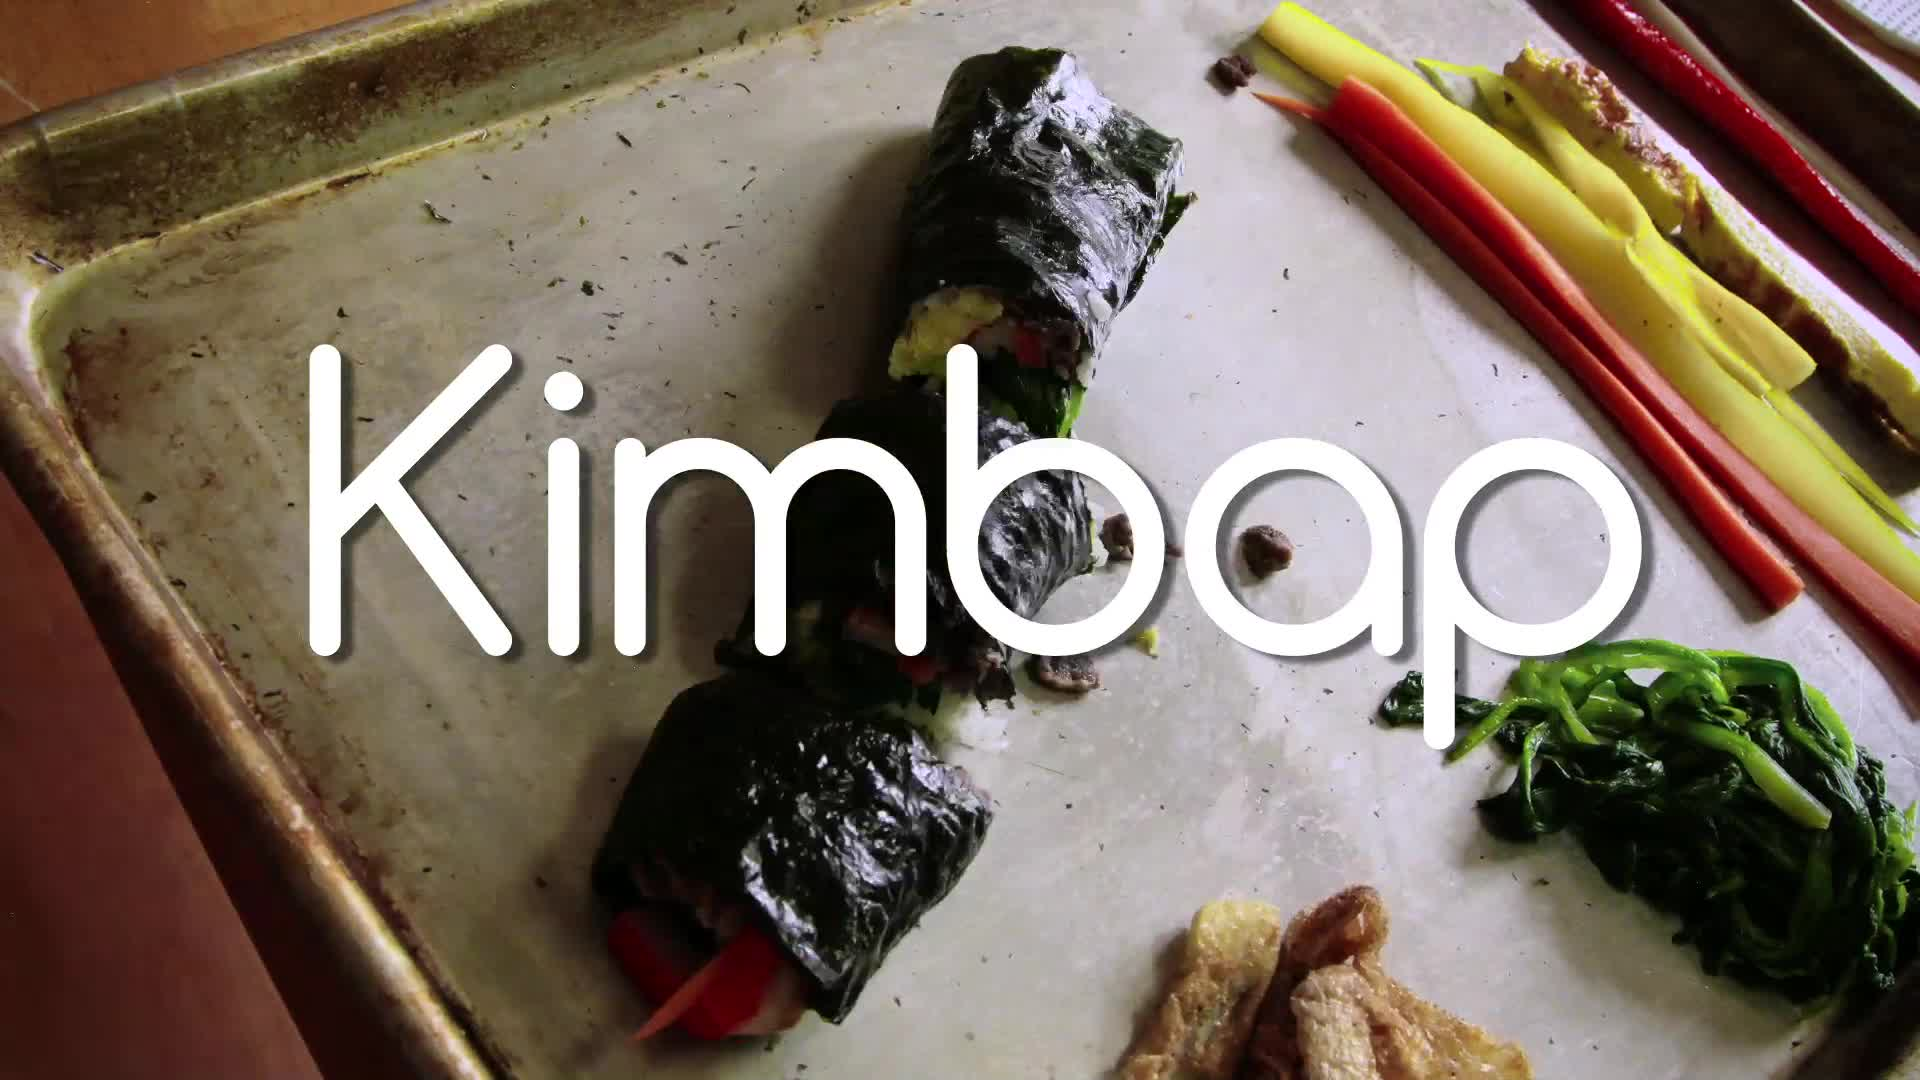 Honoree - How to Make Kimbap